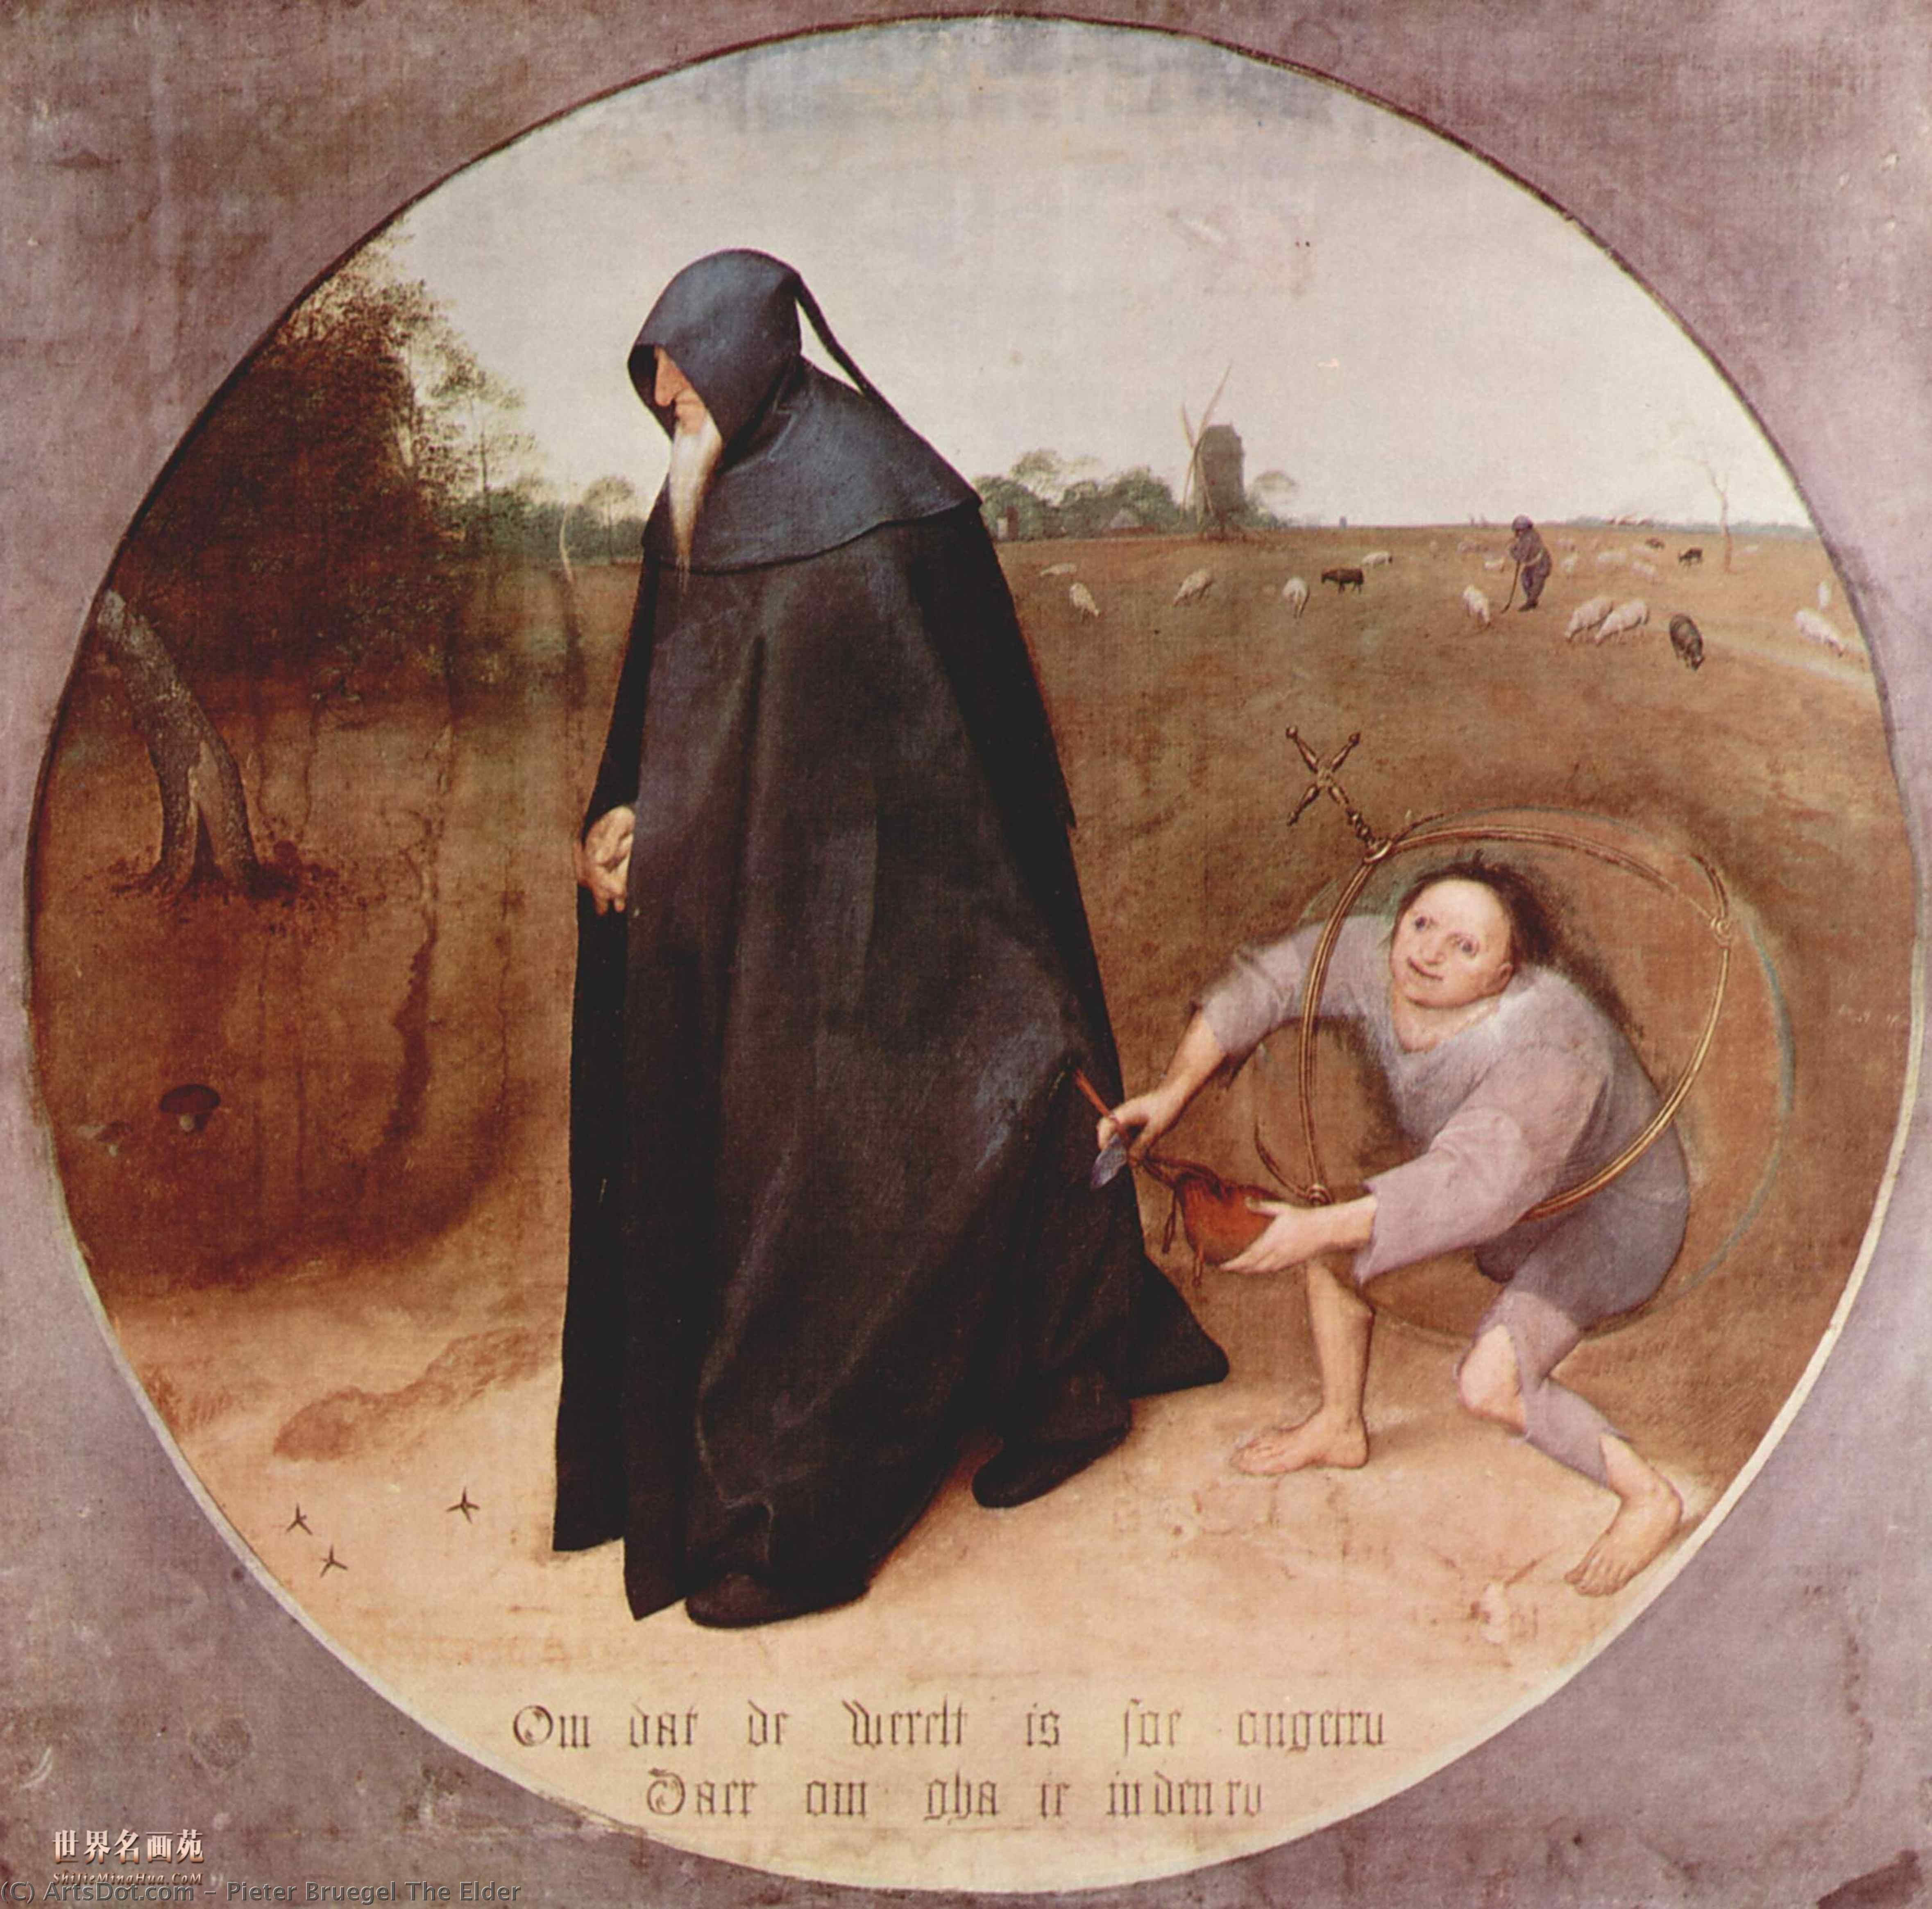 Buy Museum Art Reproductions : Misanthrope, 1568 by Pieter Bruegel The Elder (1525-1569, Belgium) | ArtsDot.com